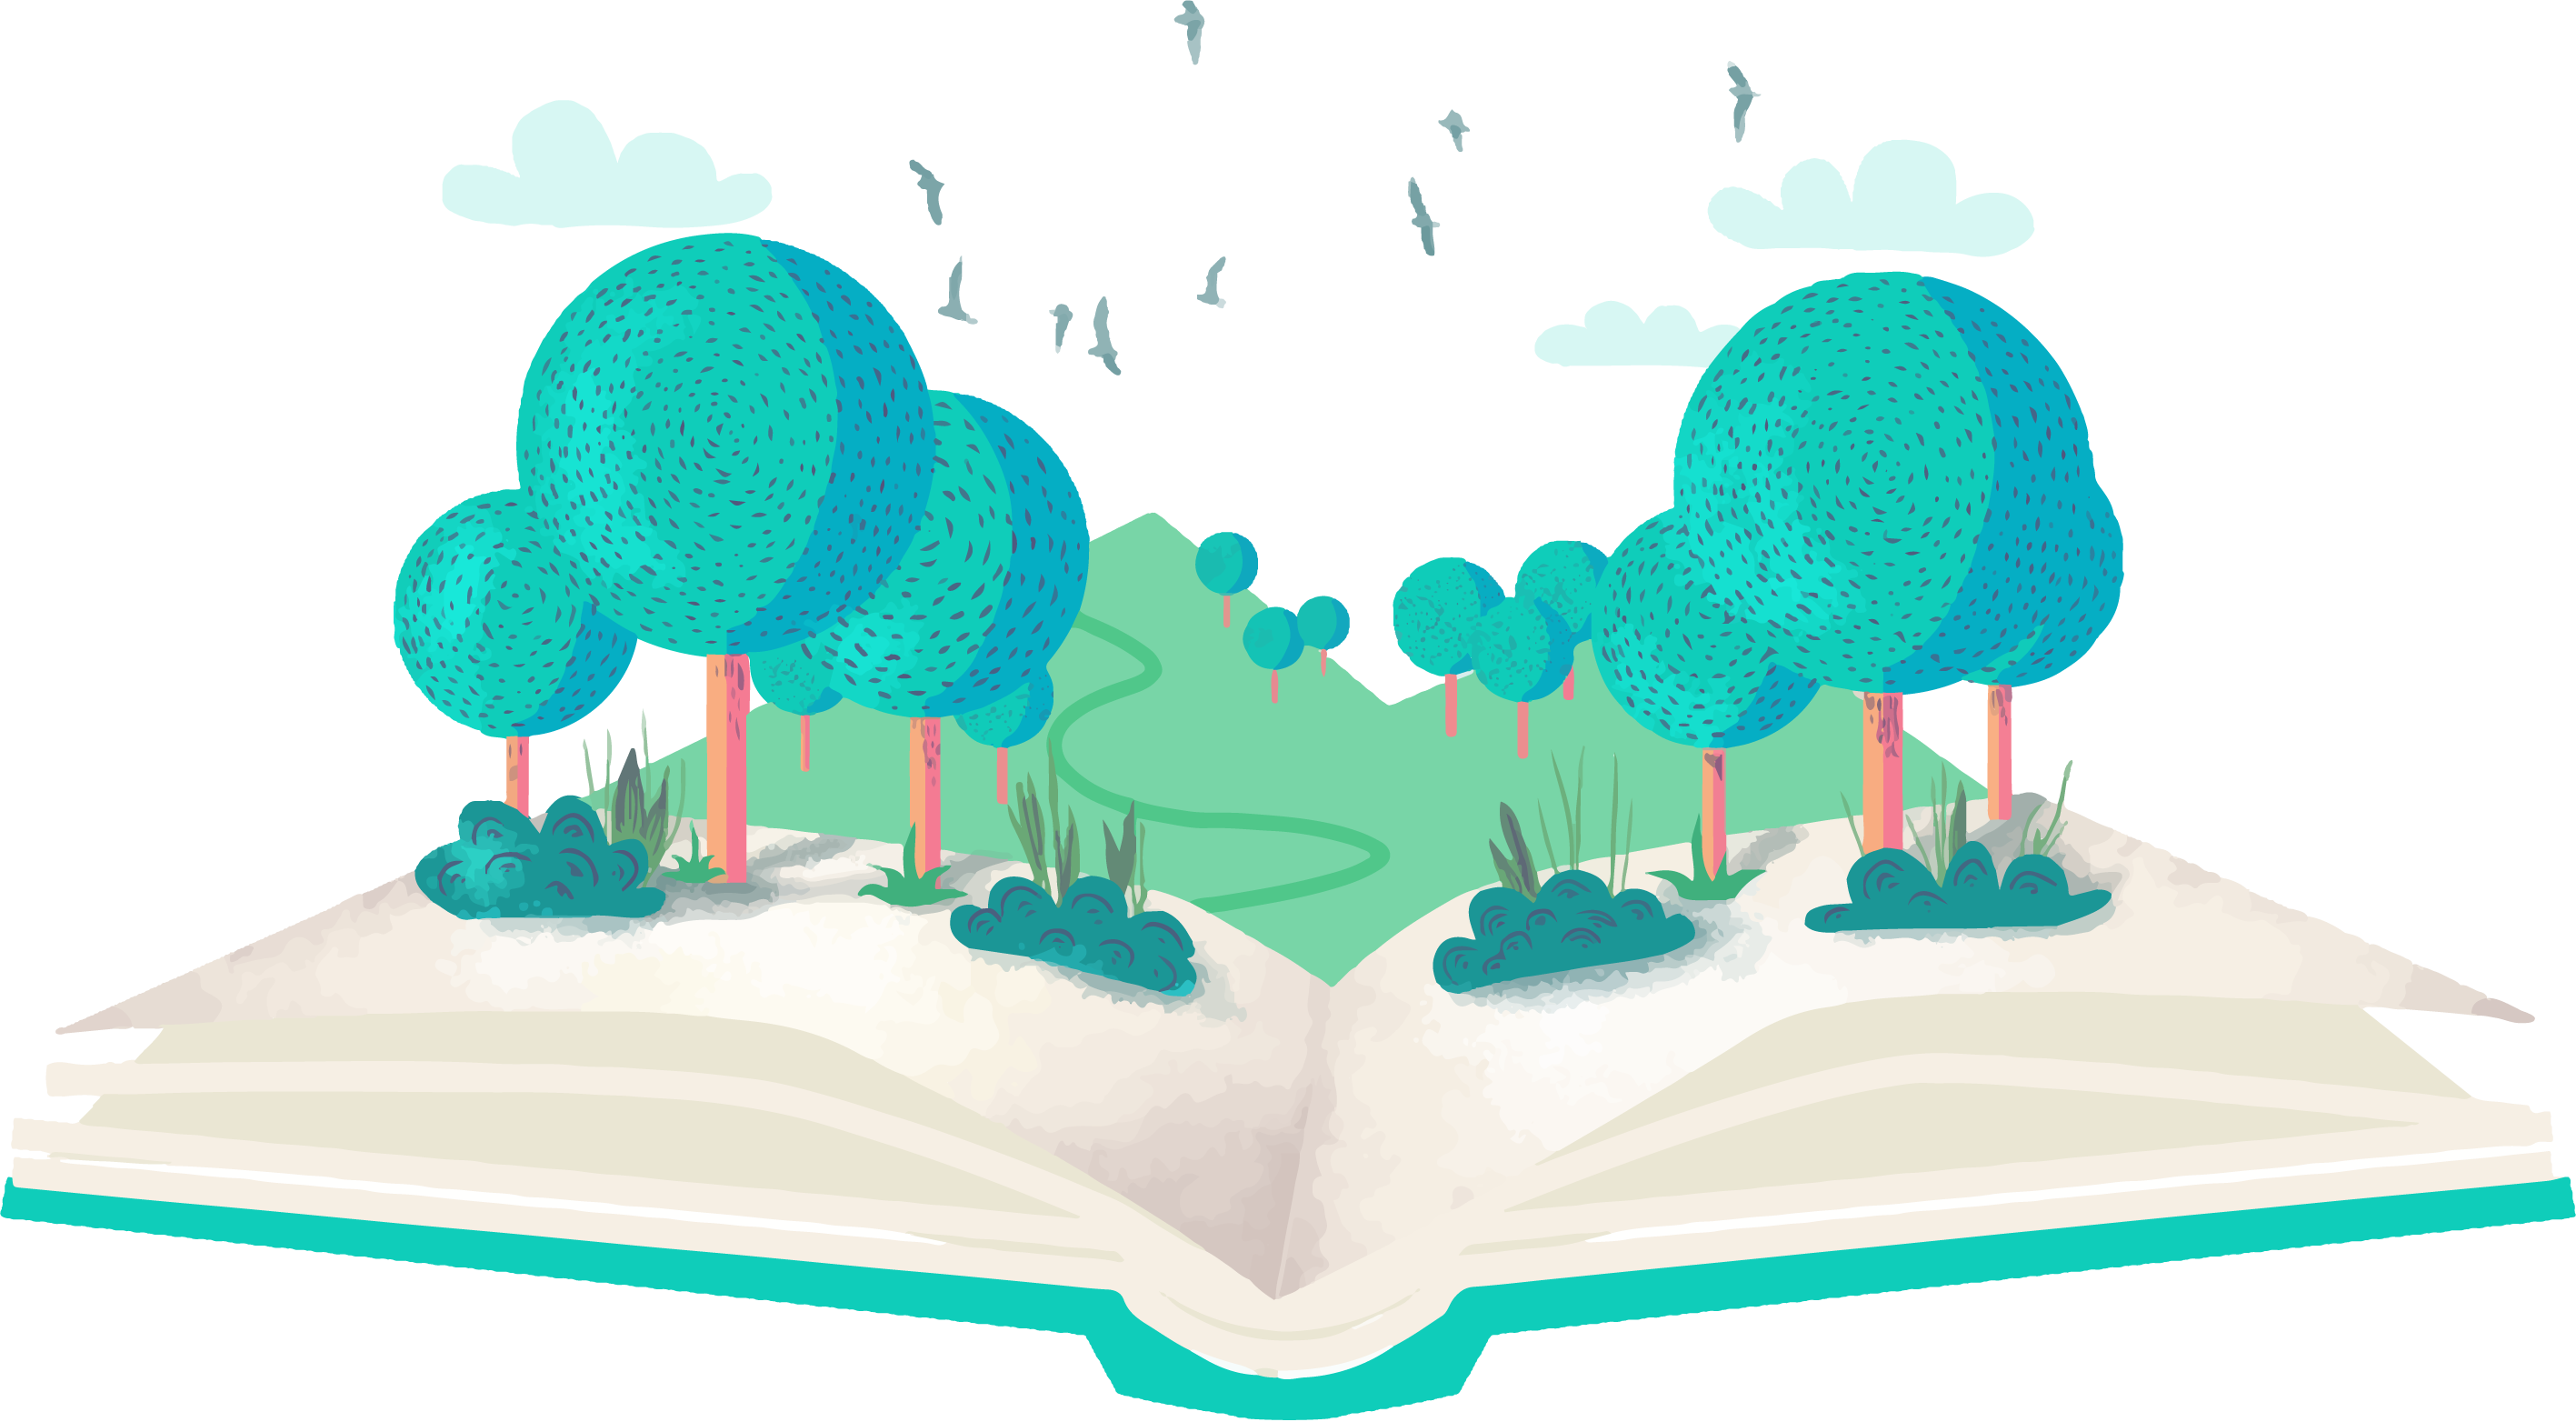 A book with a forest in it